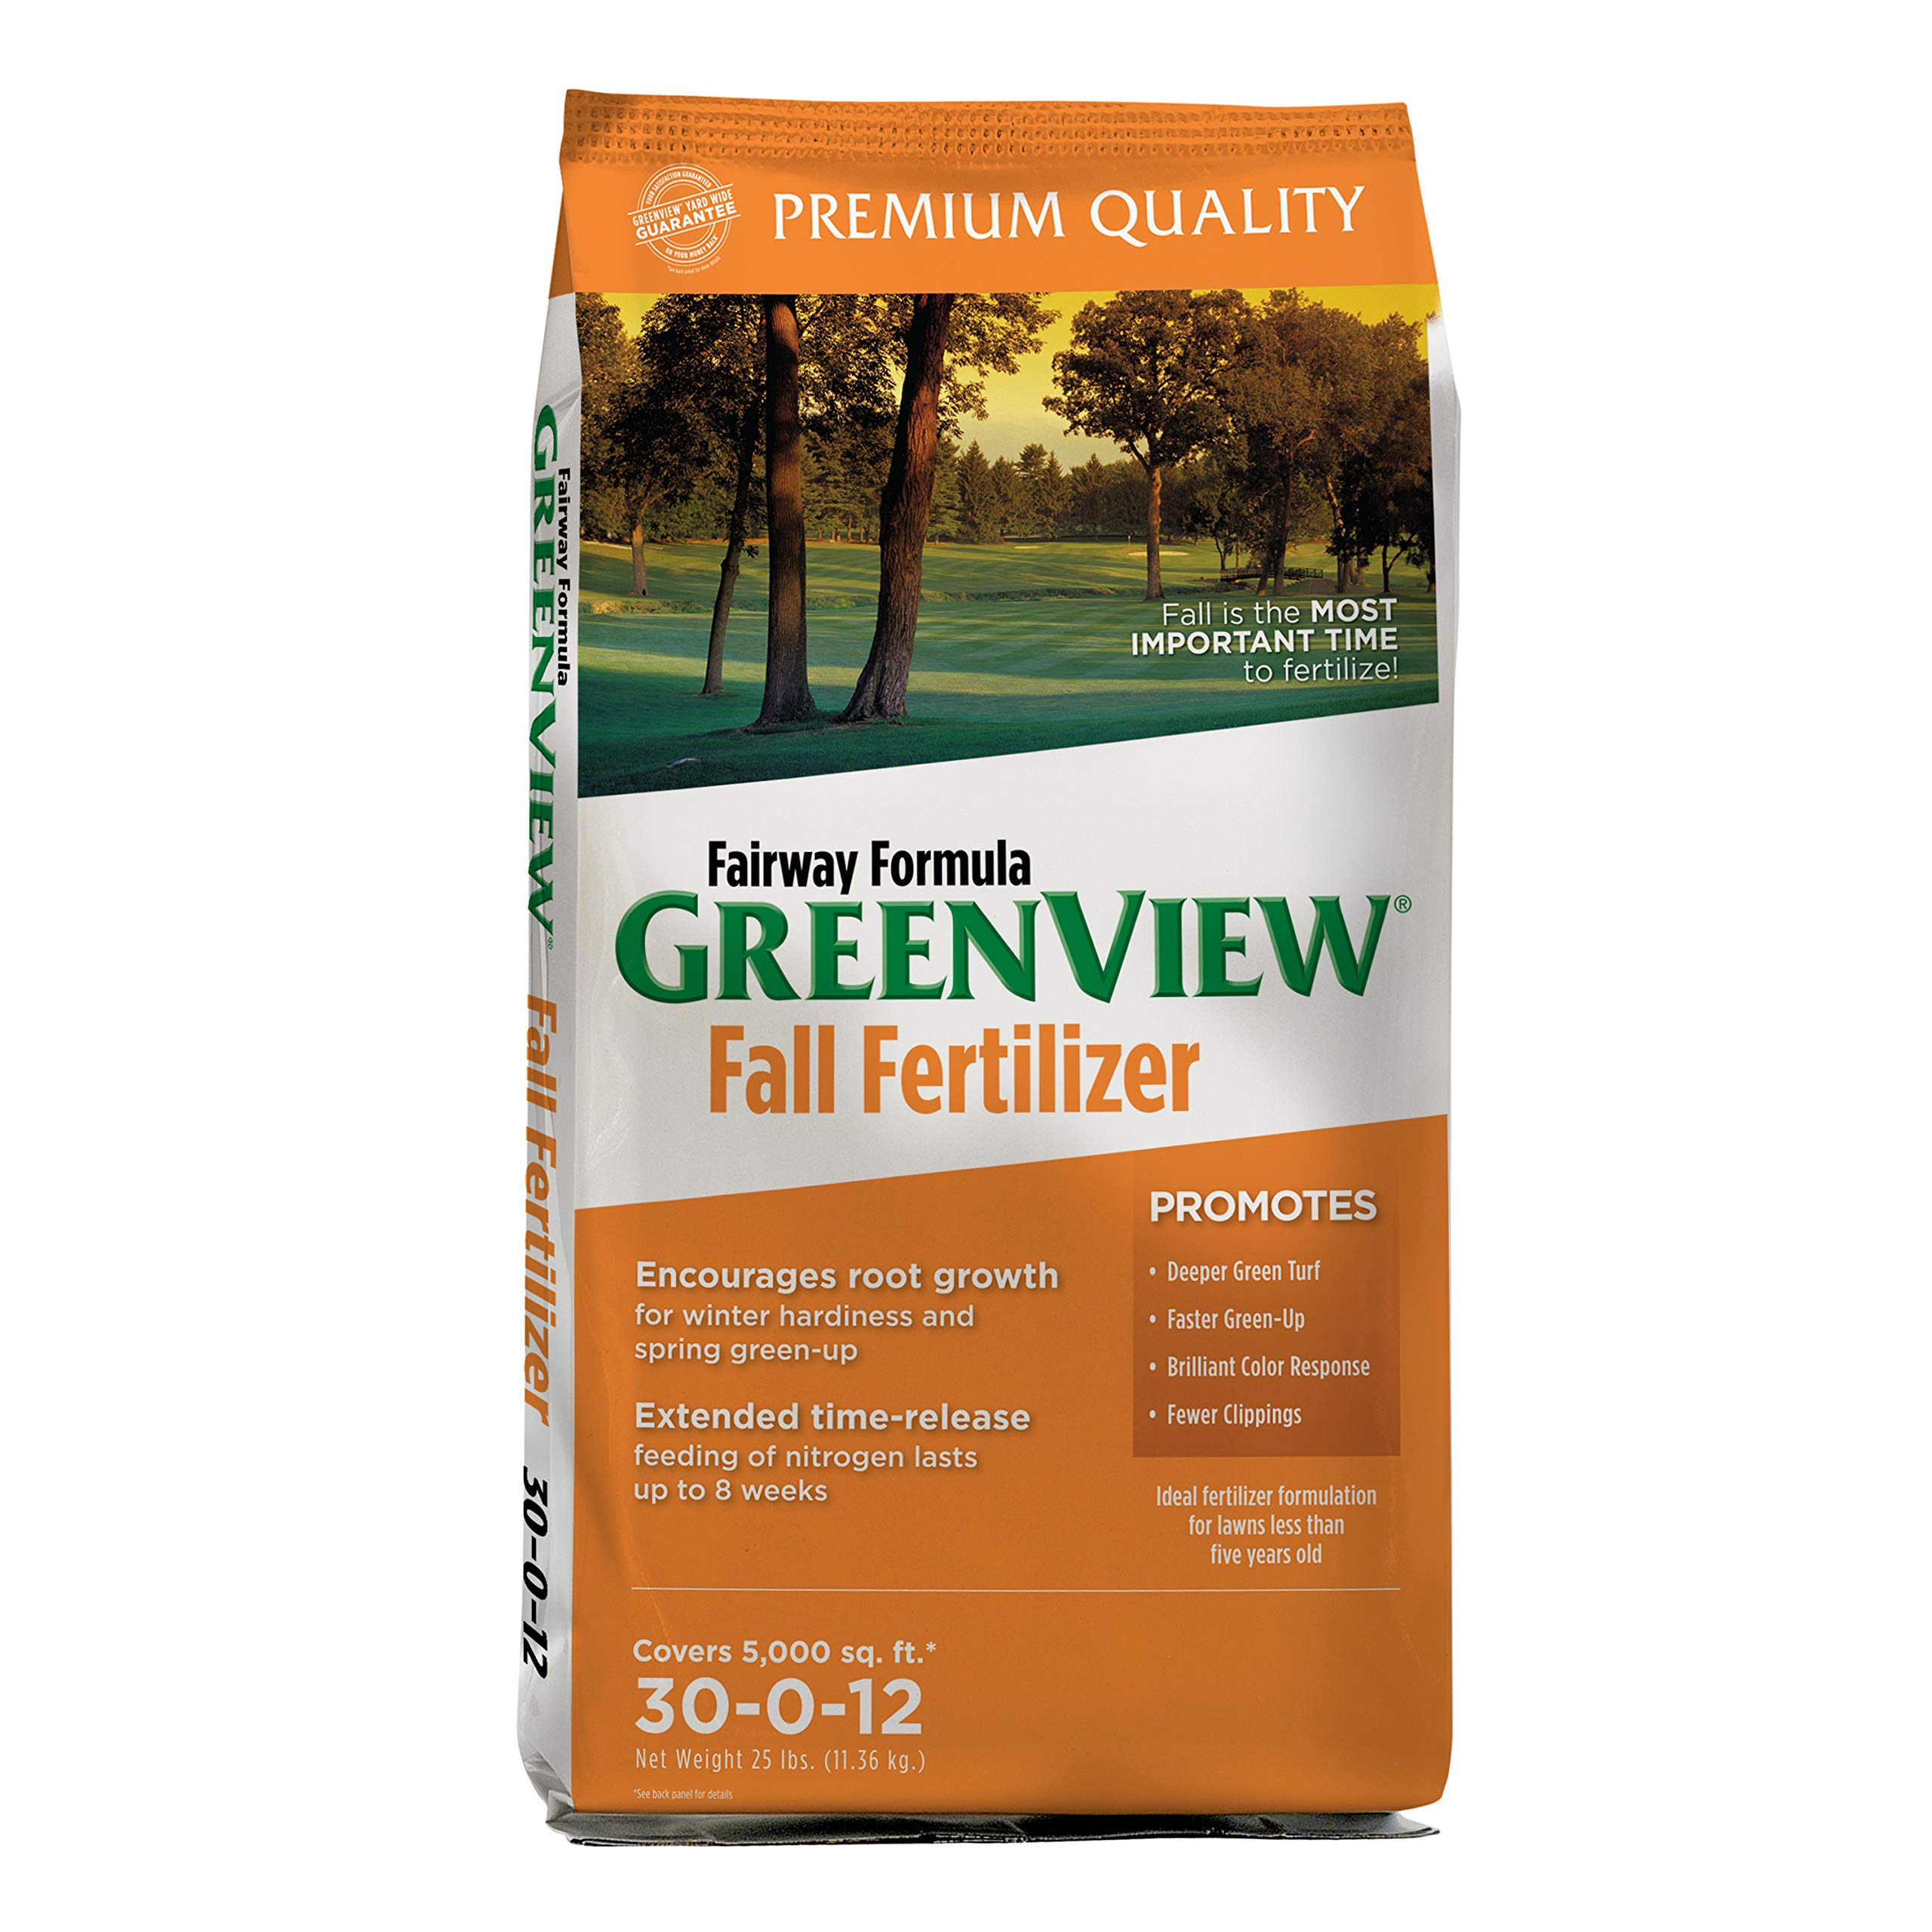 GreenView Fairway Formula Fall Lawn Fertilizer - 25 lb. - Covers 5,000 sq. ft by GreenView